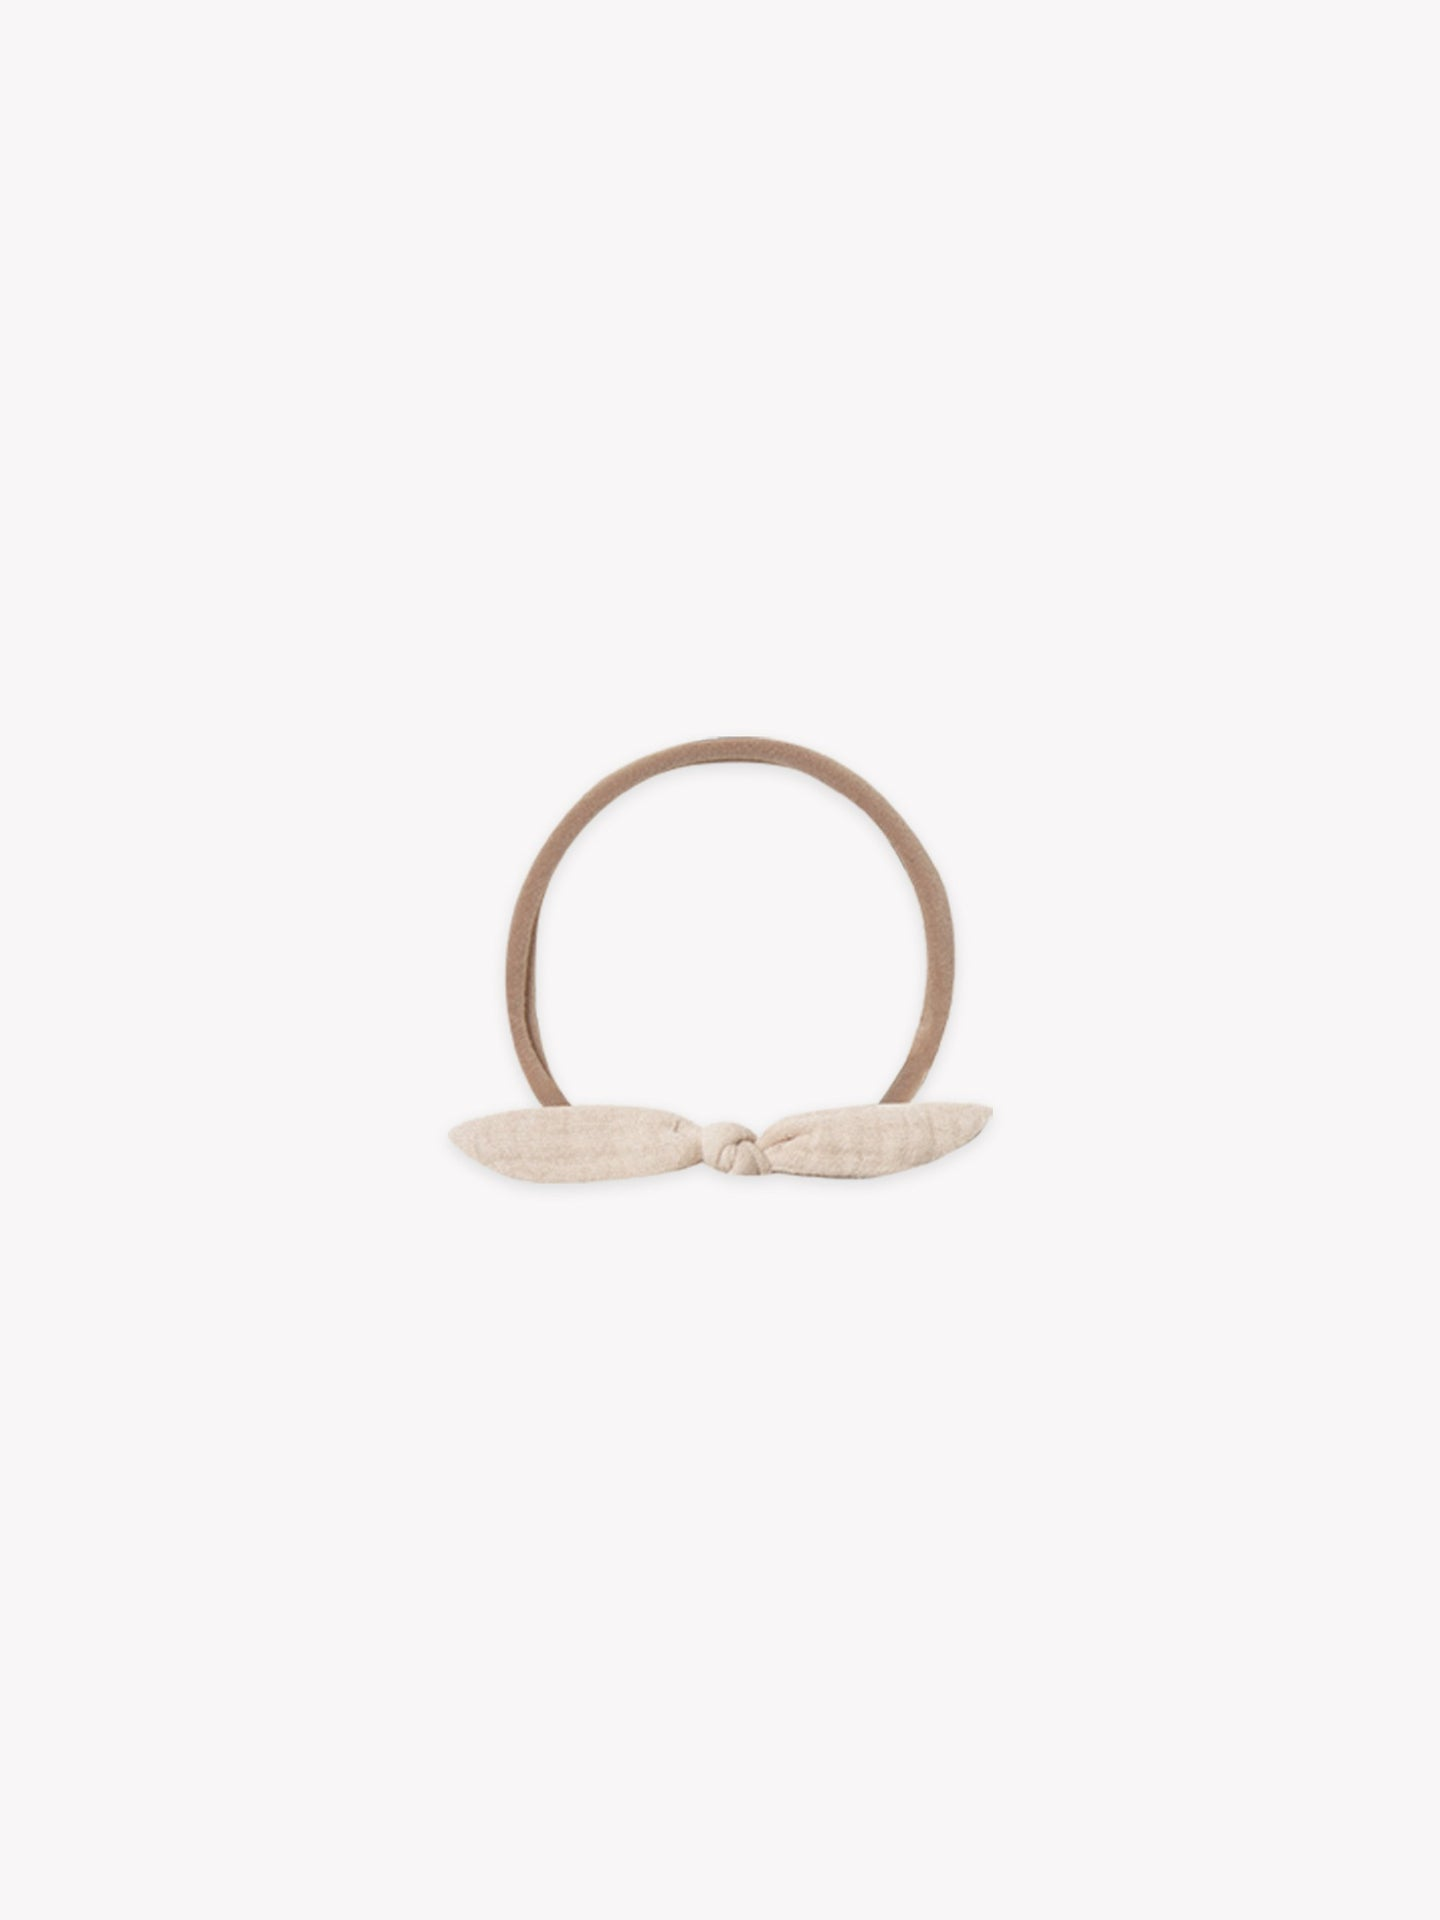 Quincy Mae - Organic Little Knot Headband - Pebble